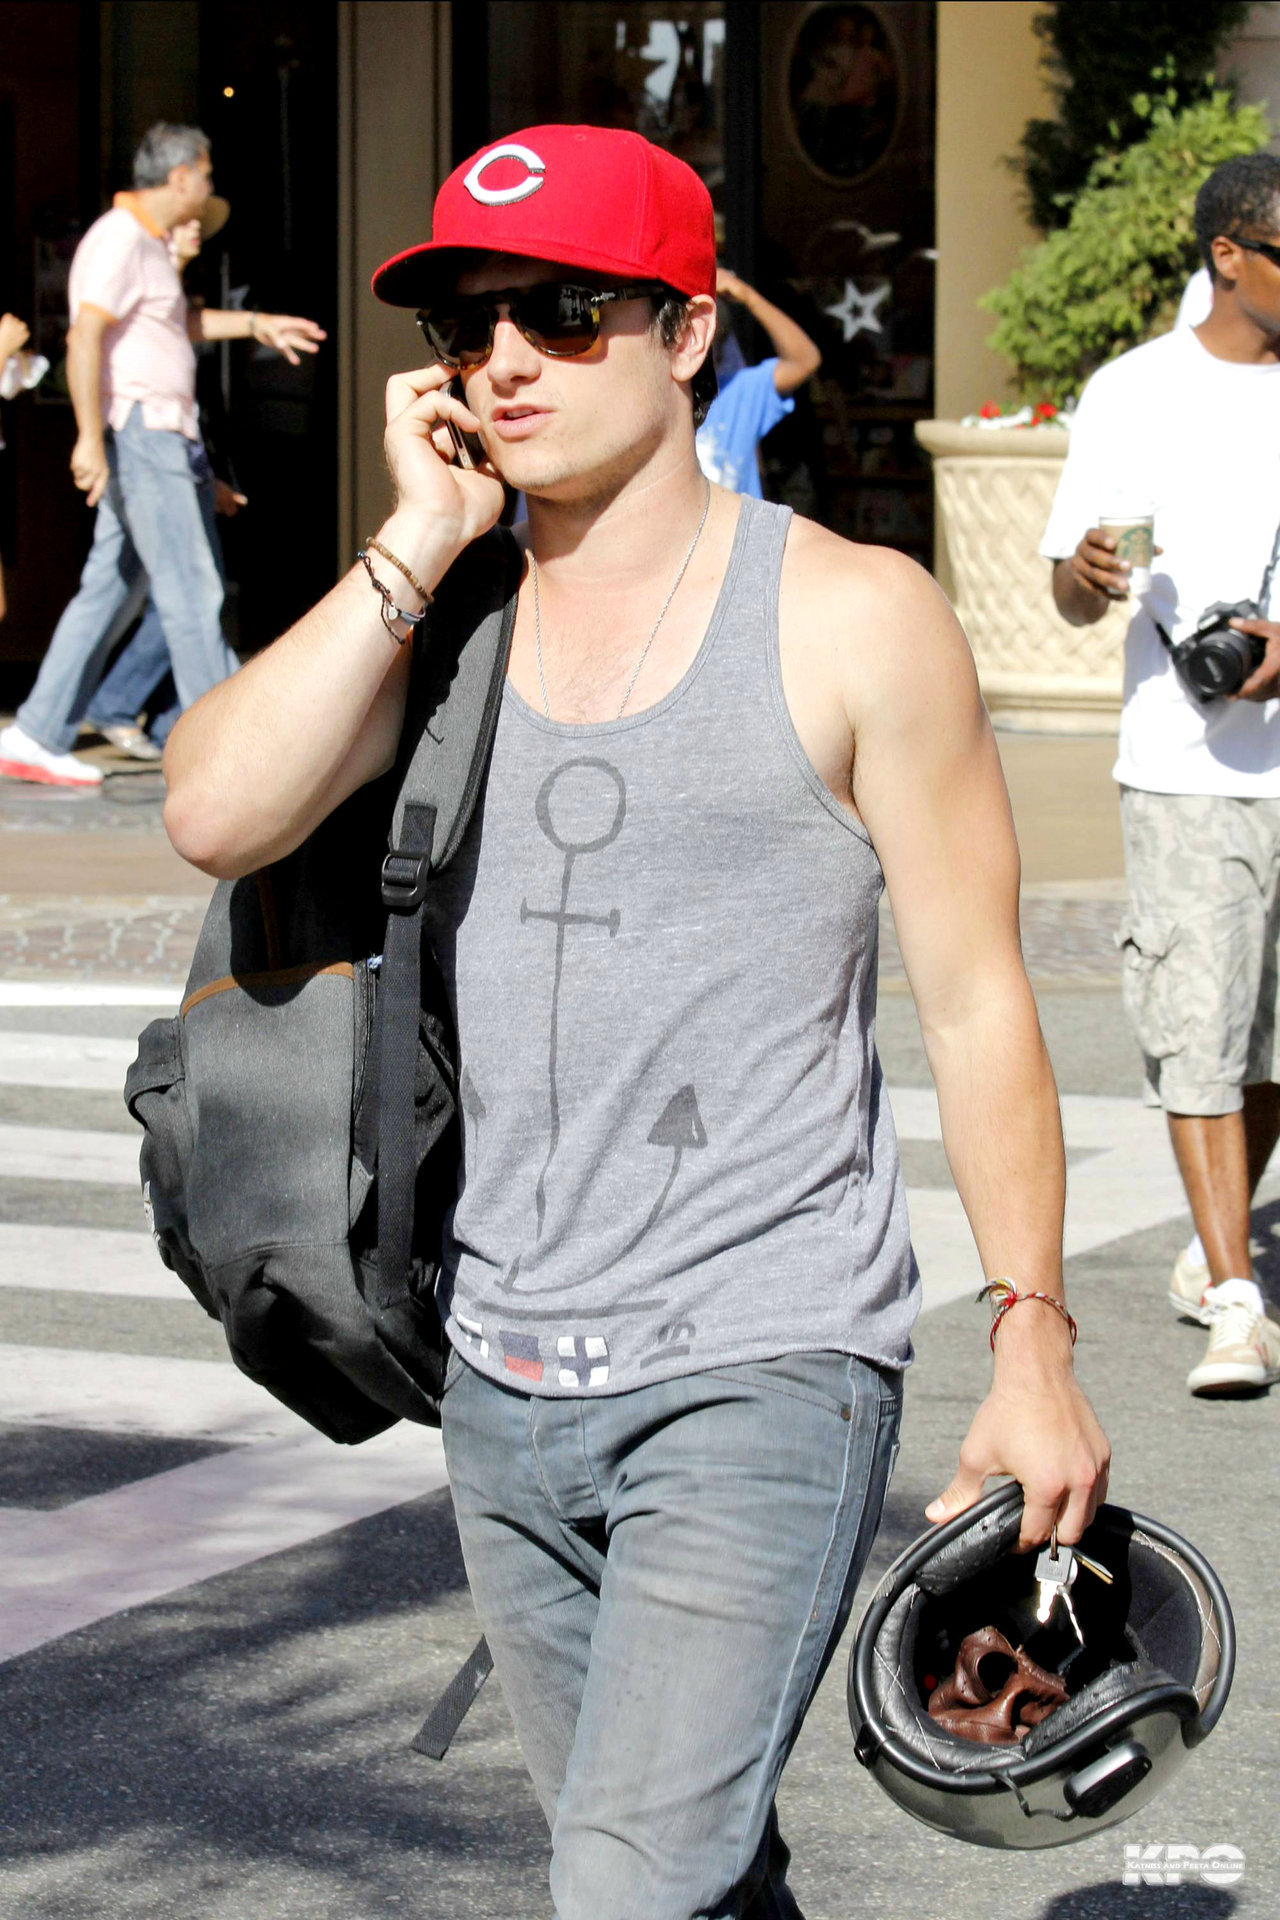 Josh shopping at the Grove 7/29